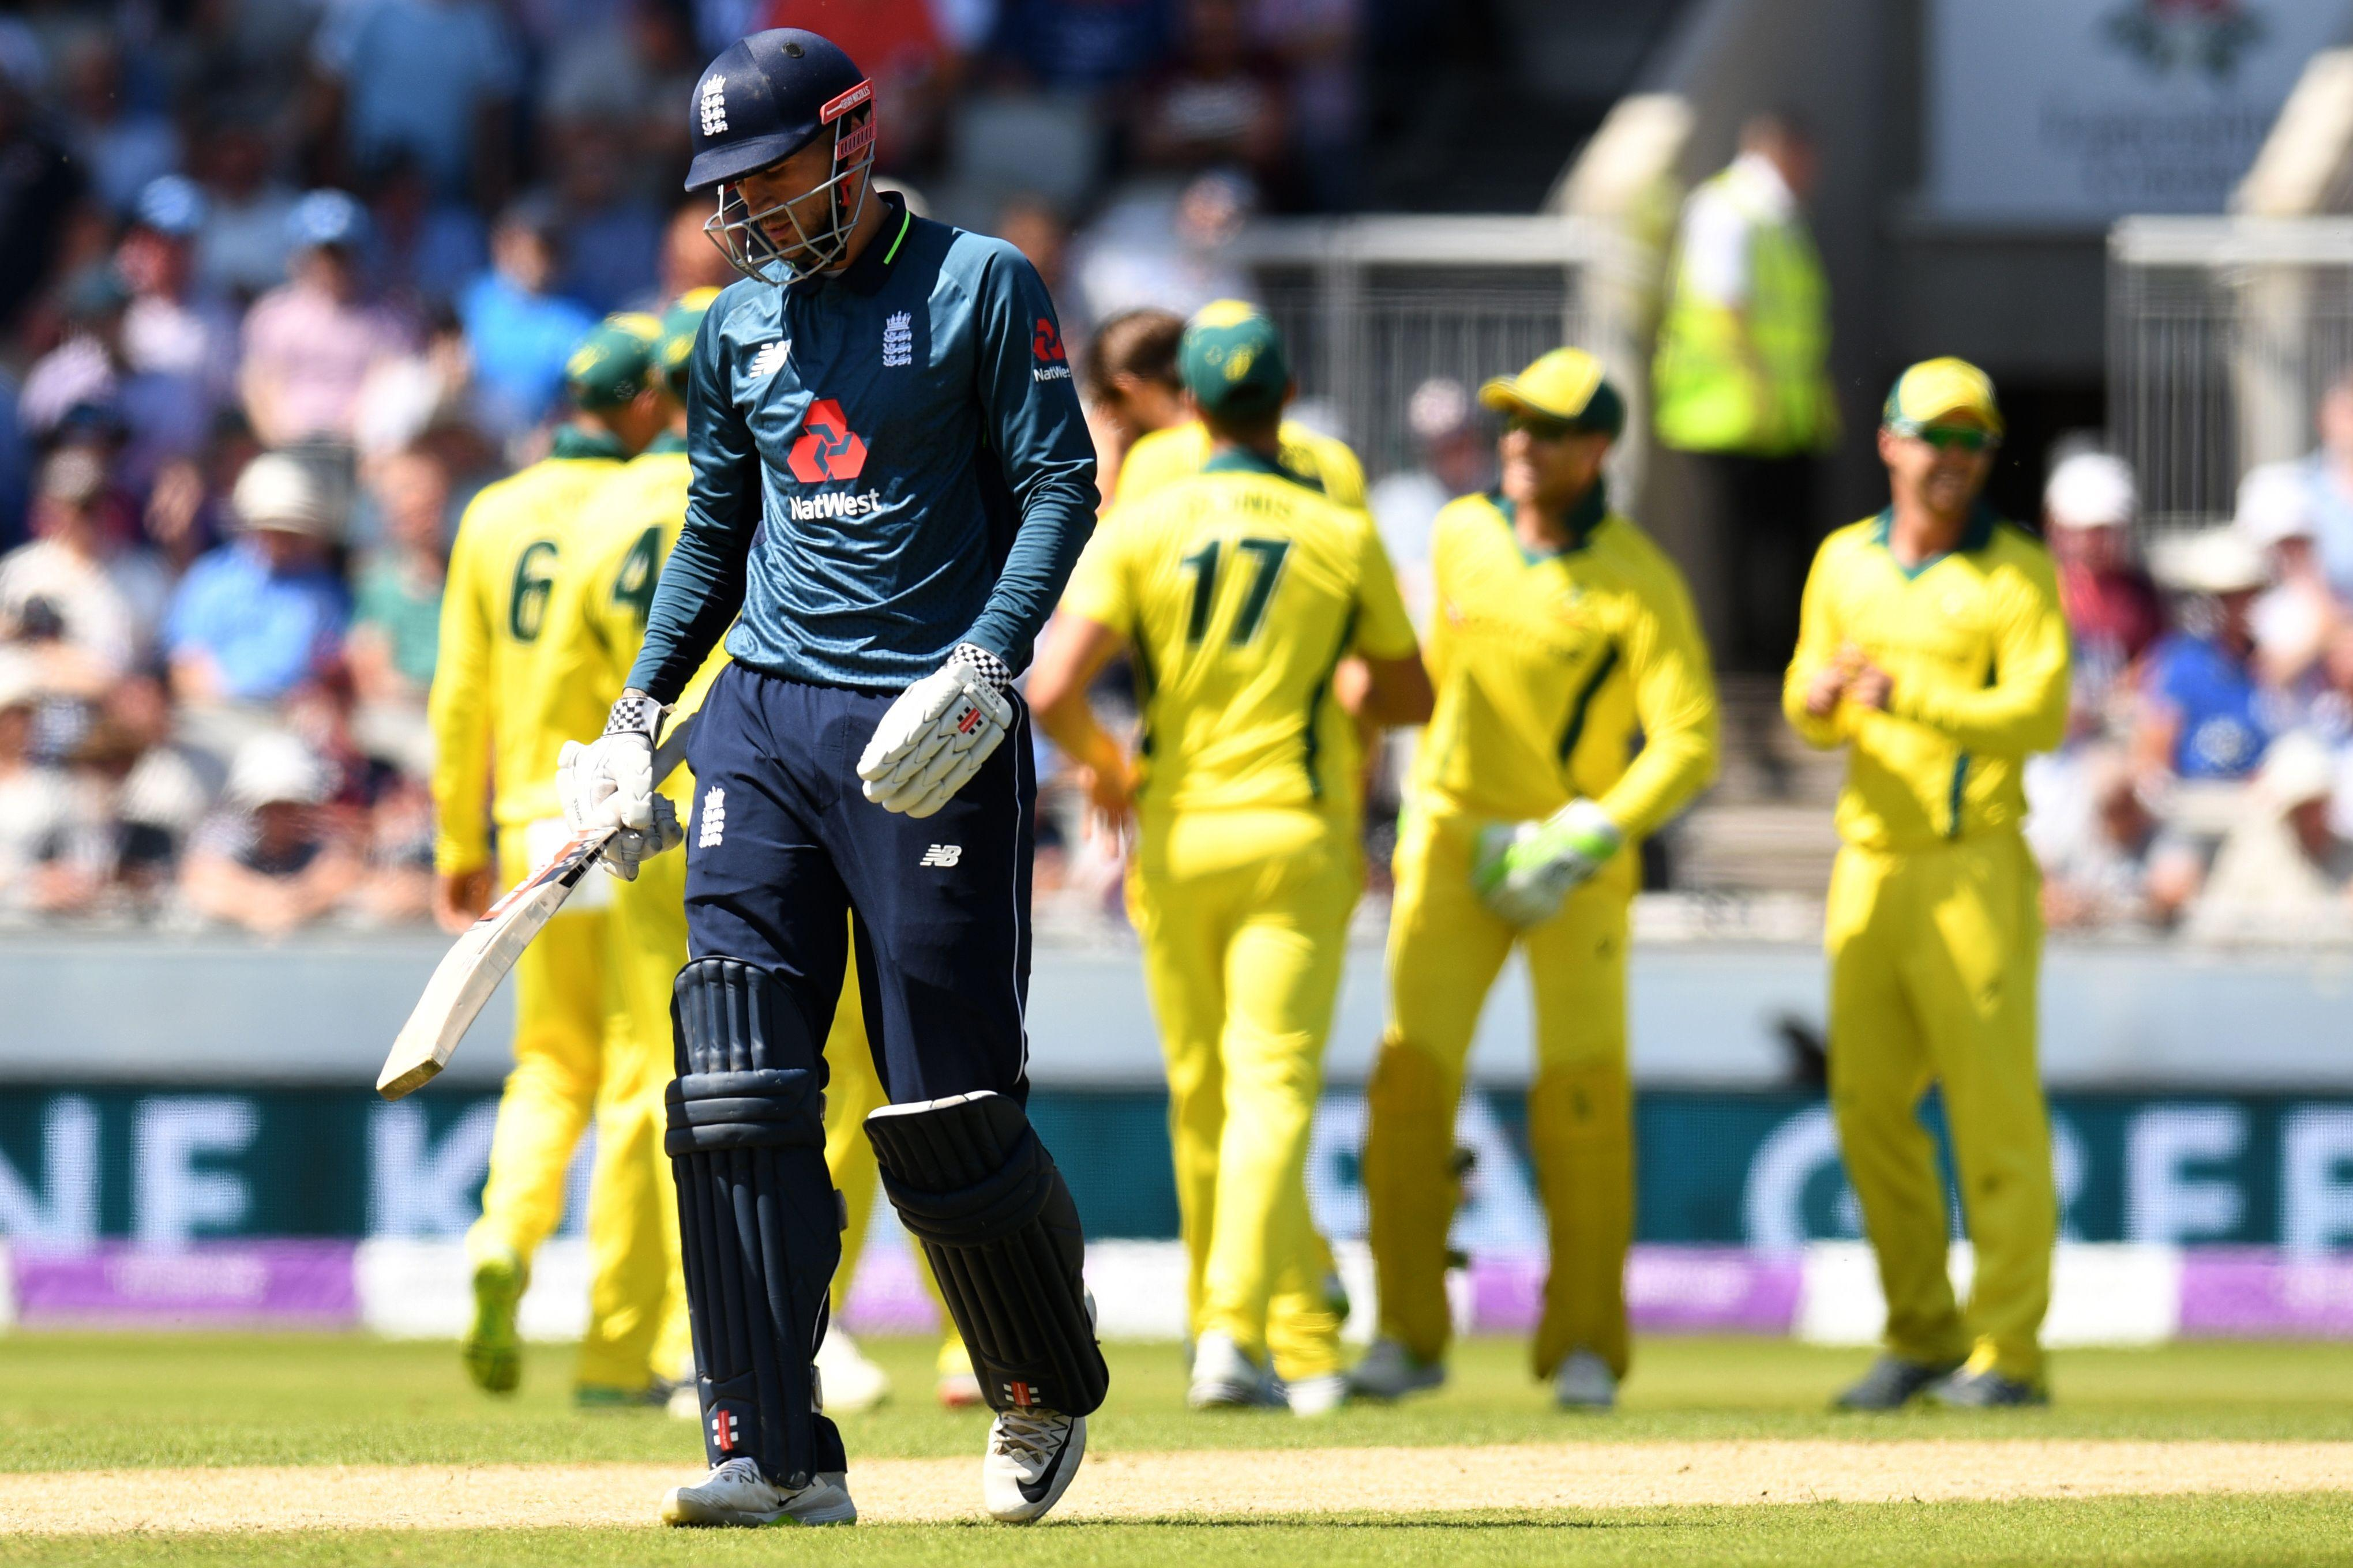 England's top order was found wanting for once as they collapsed to 50-5 at one stage